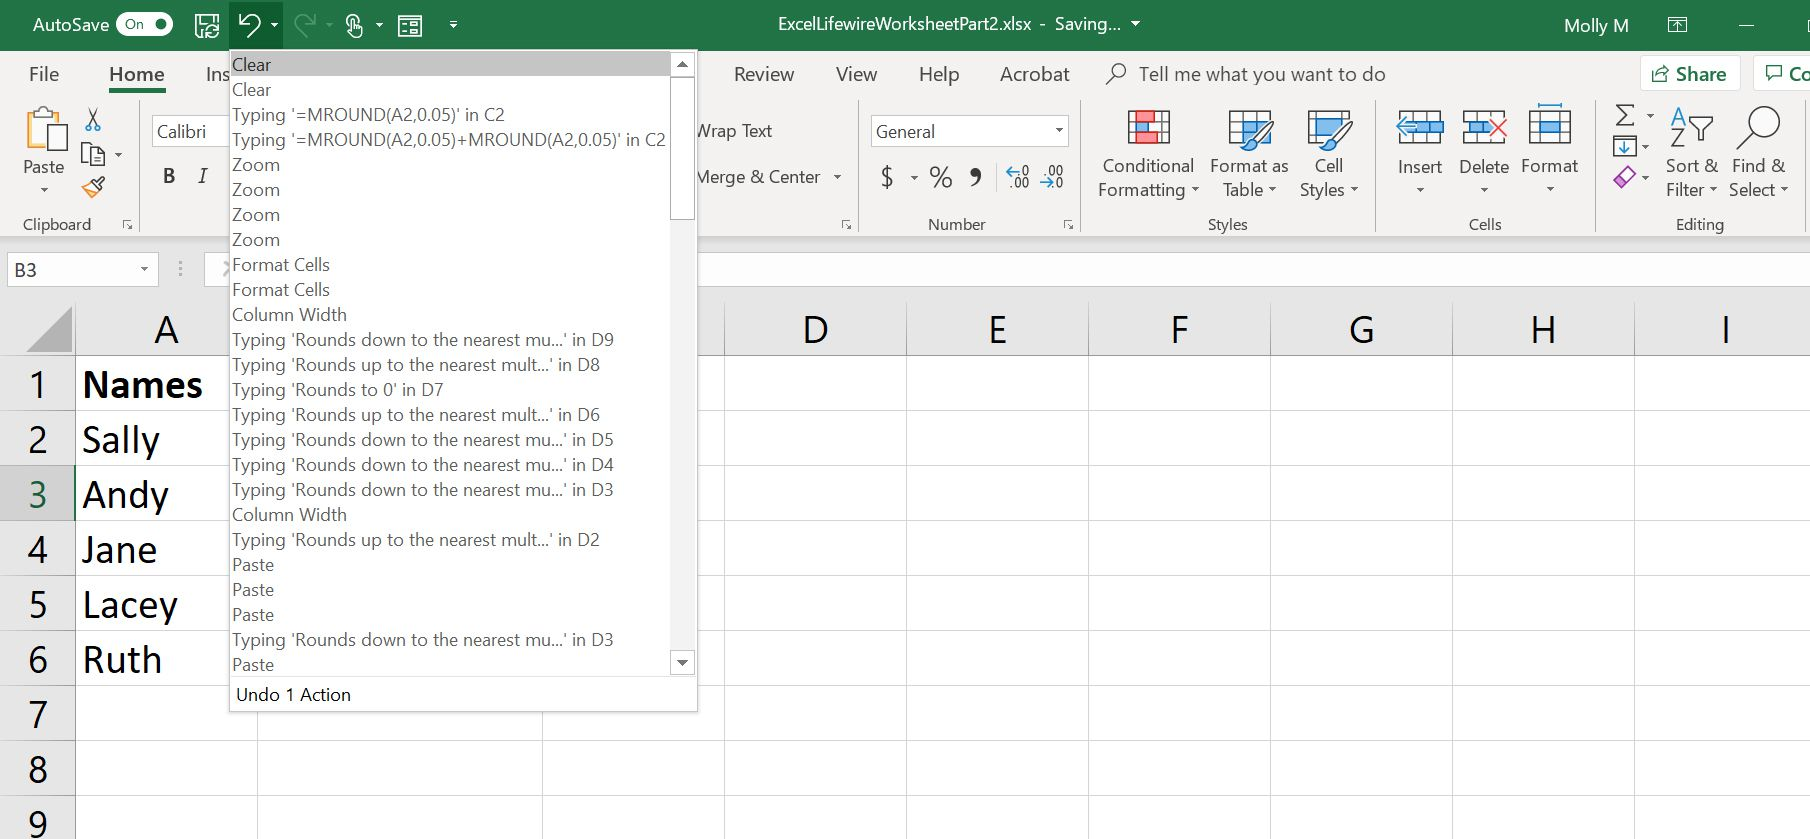 A screenshot of Excel's Undo button with a drop-down menu showing all actions that can be undone.